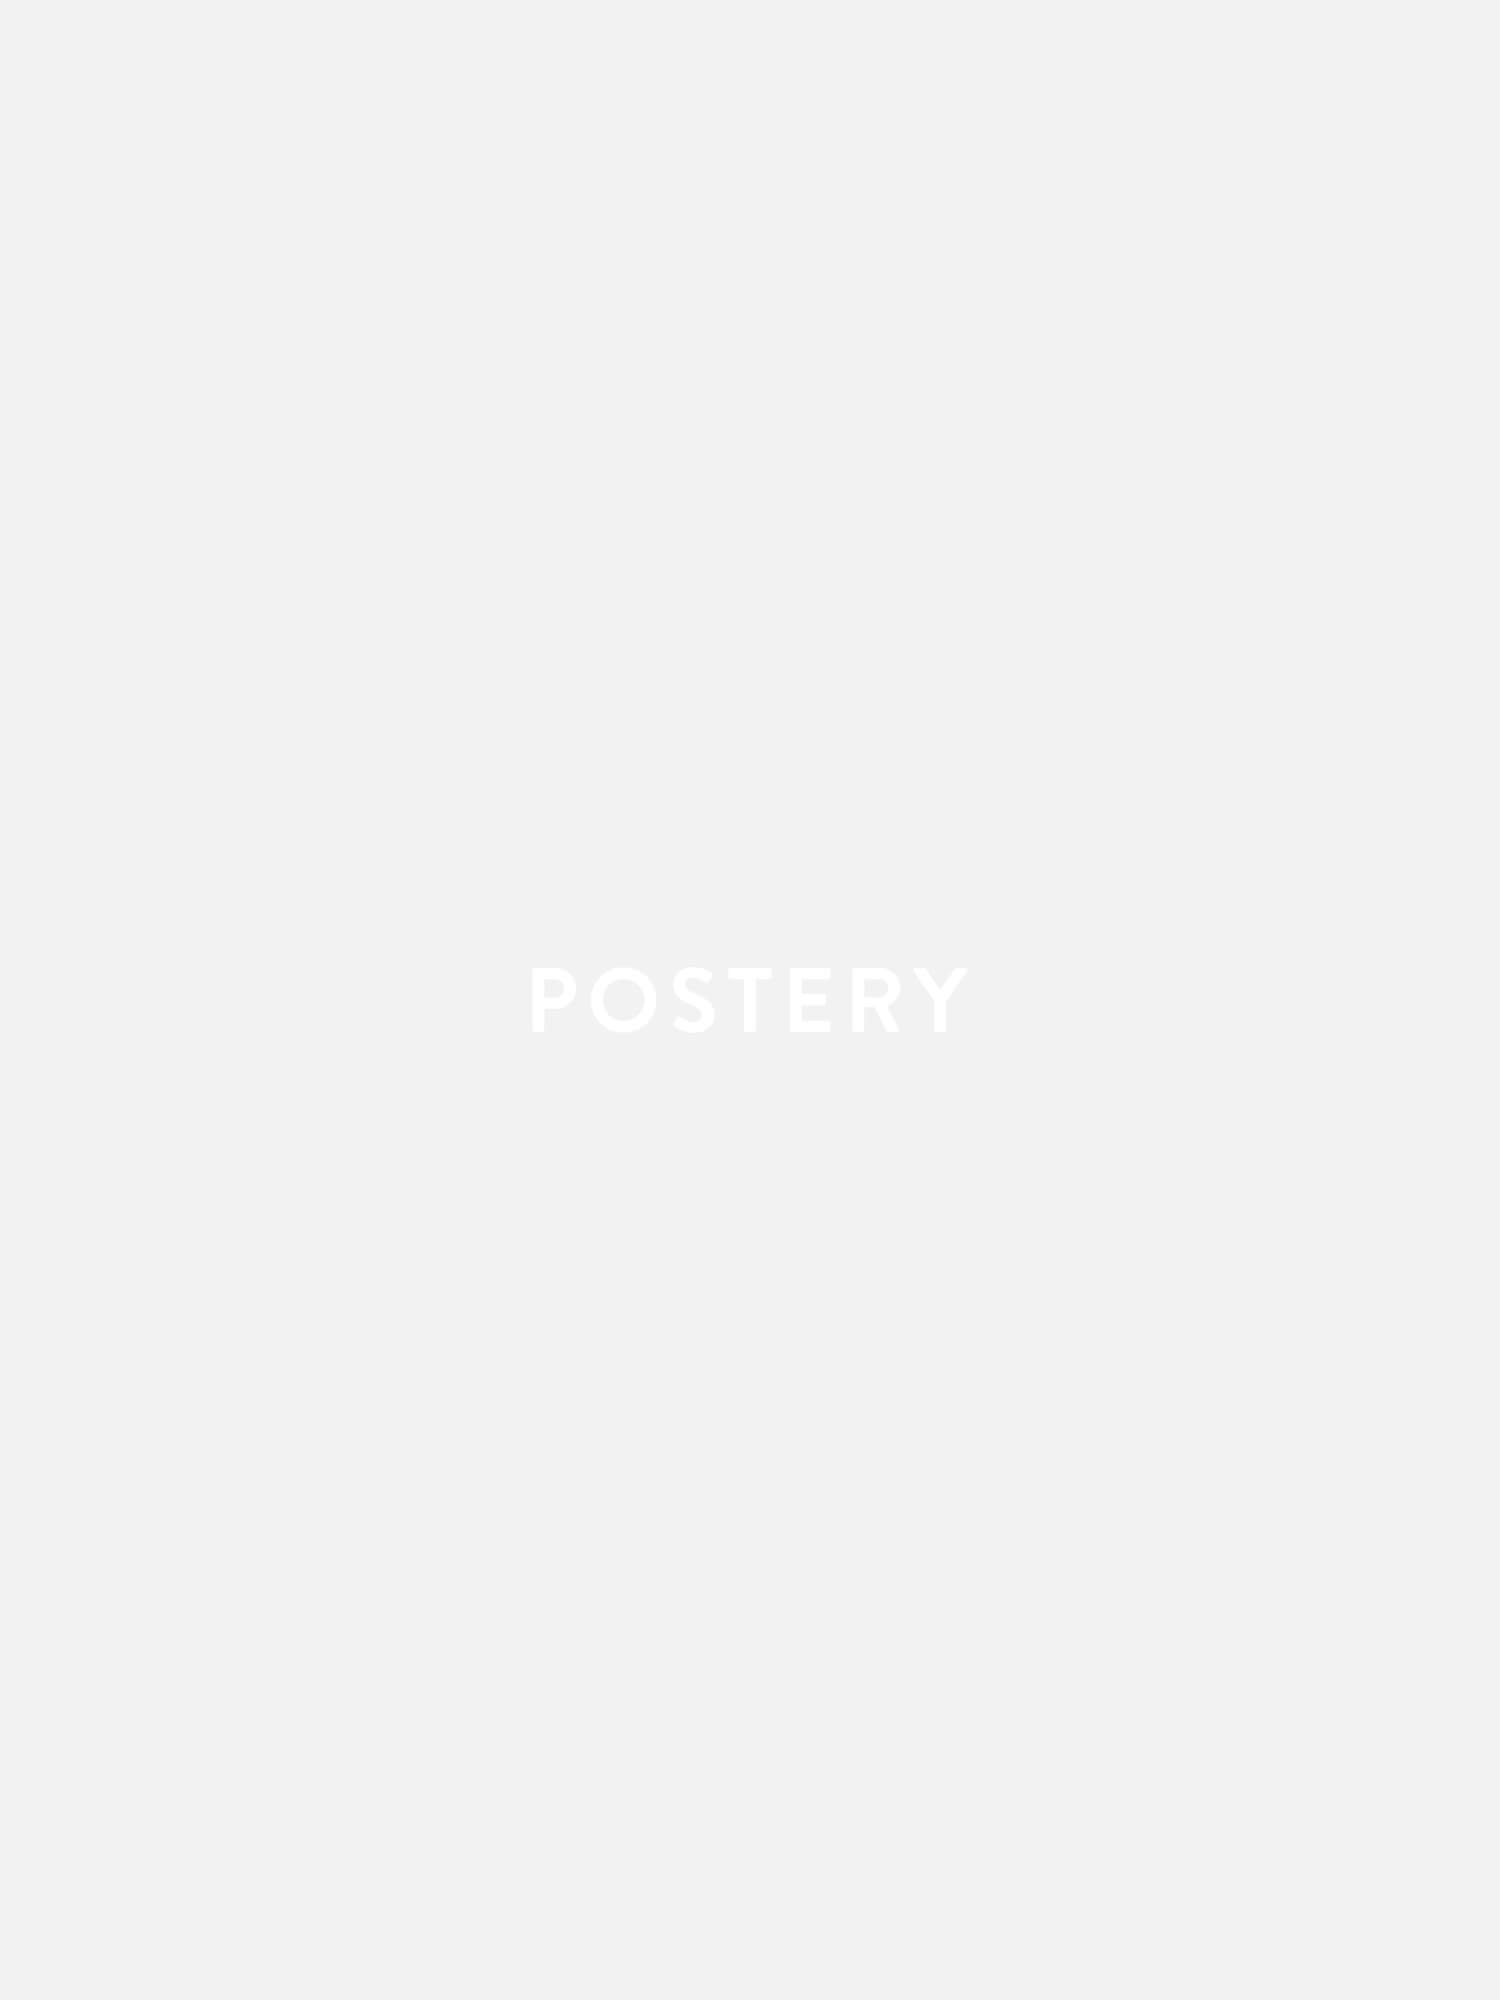 Teddy Sleeping On Cloud Poster